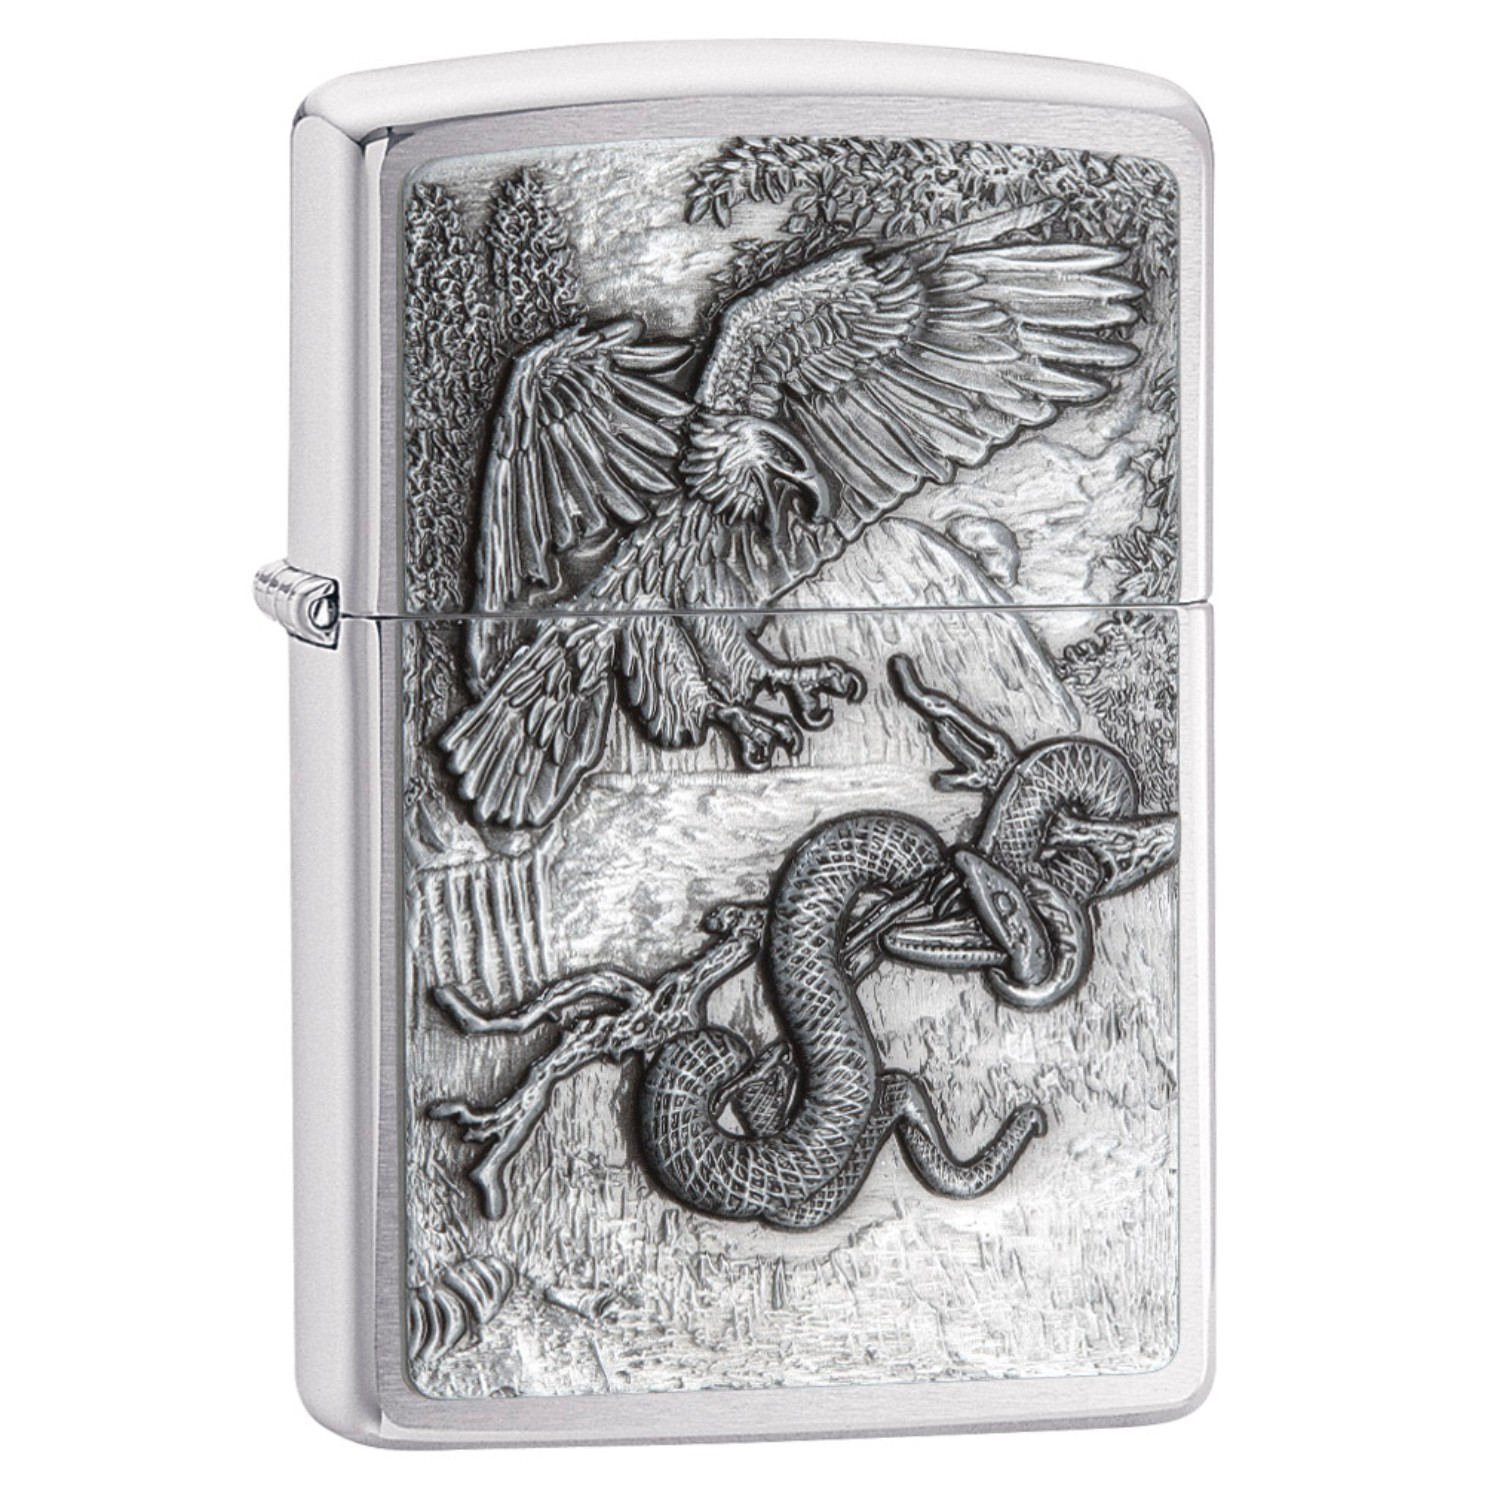 Zippo Eagle vs. Snake Lighter